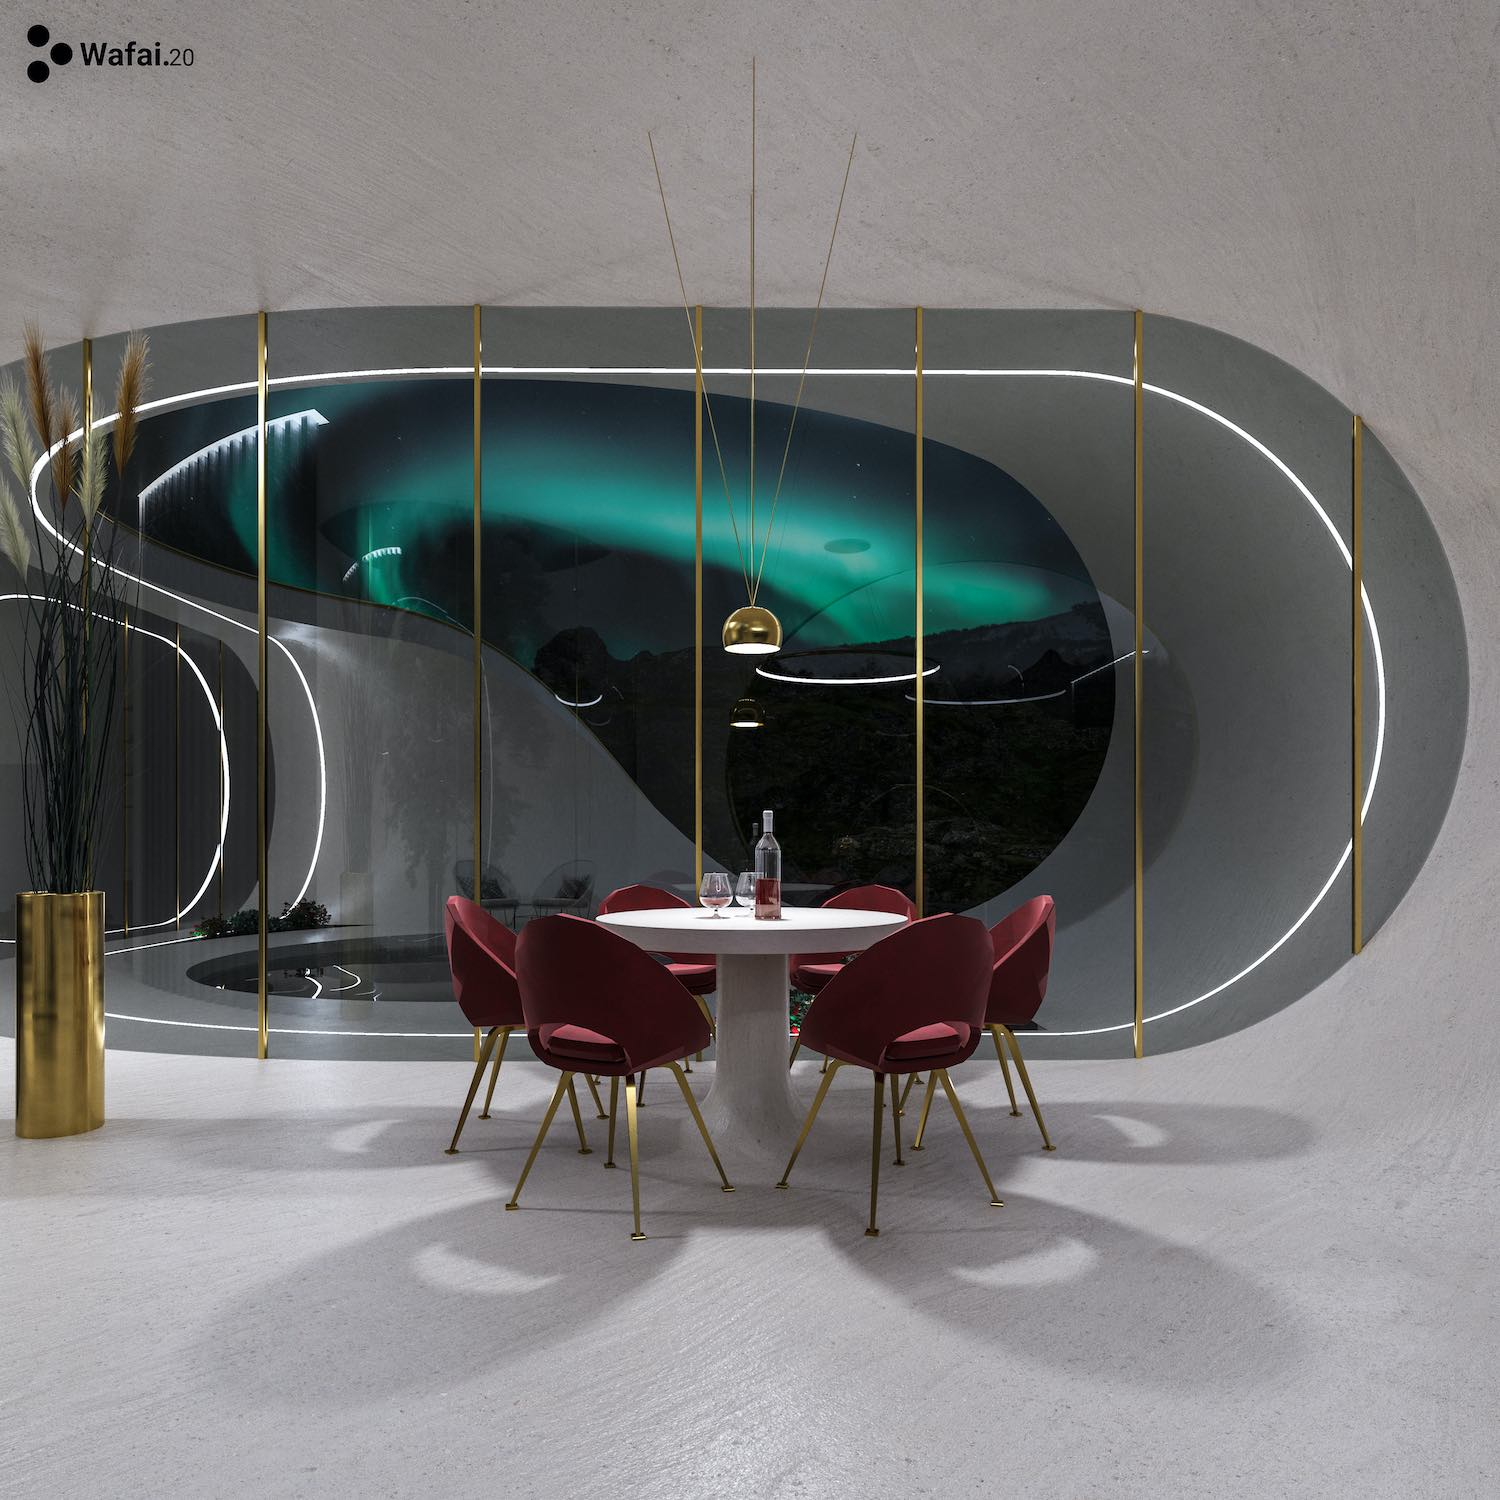 dining area with spectacular night view through circular window